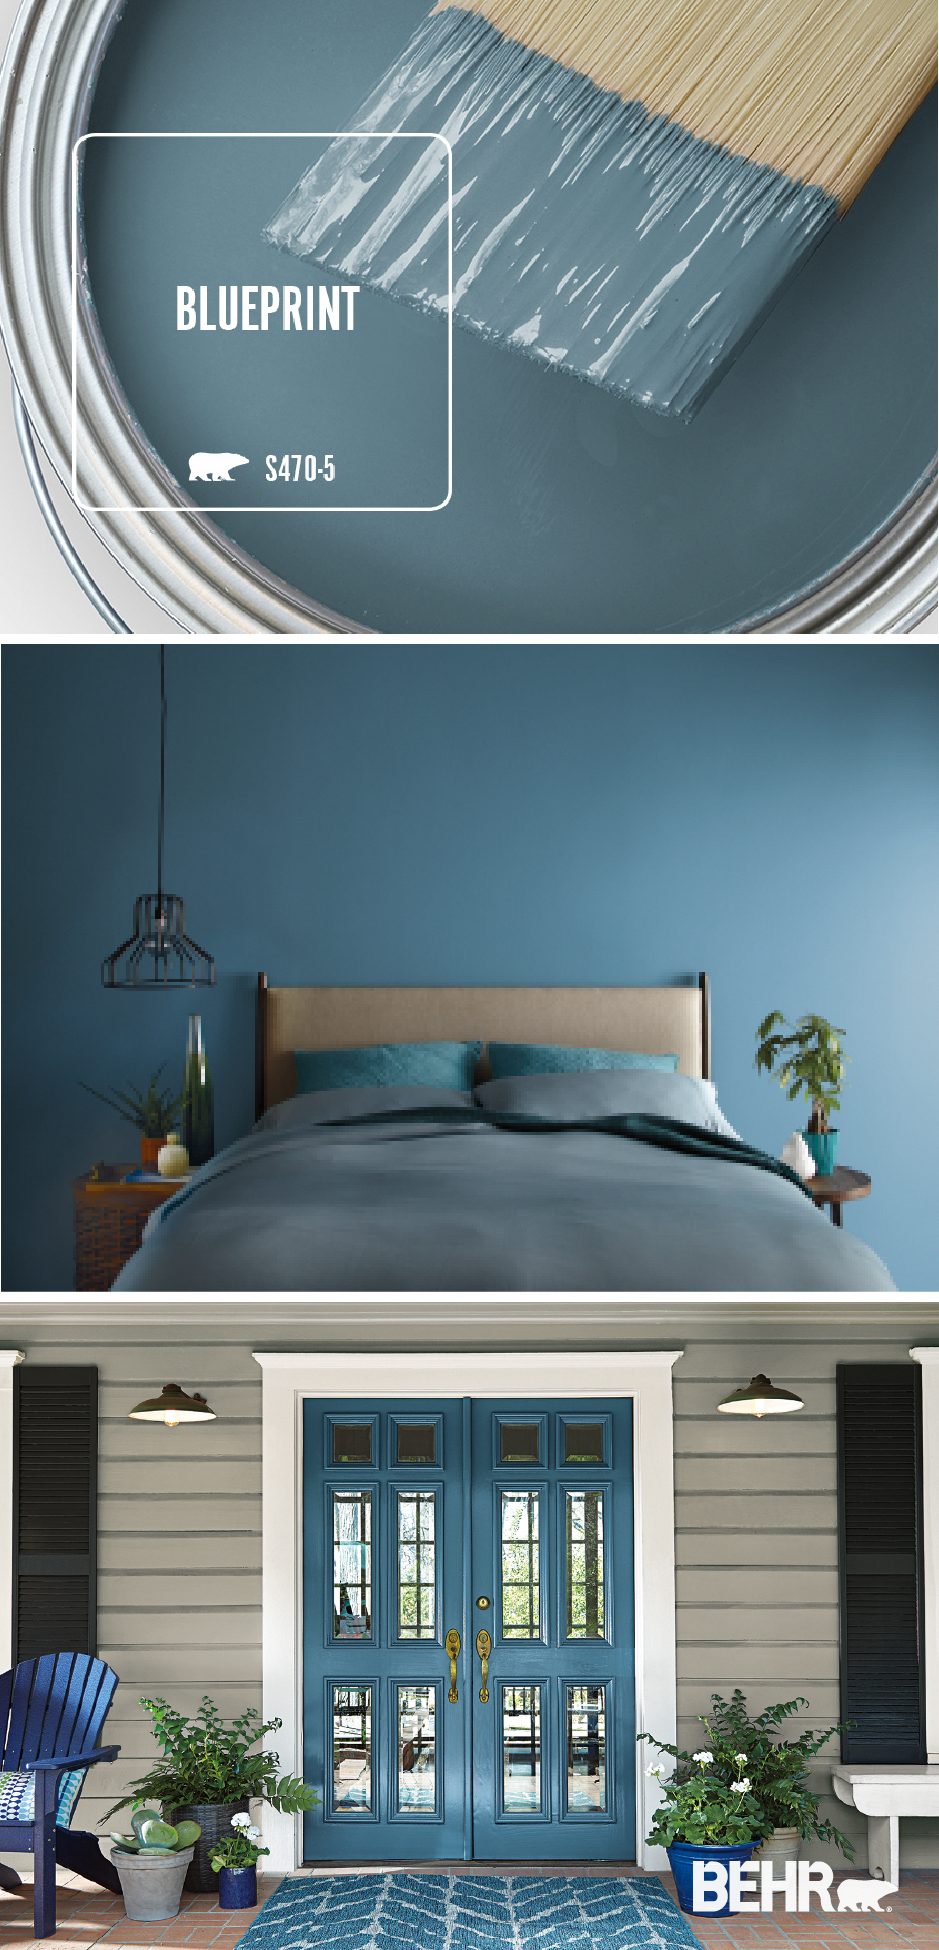 See What The Behr 2019 Color Of The Year Blueprint Can